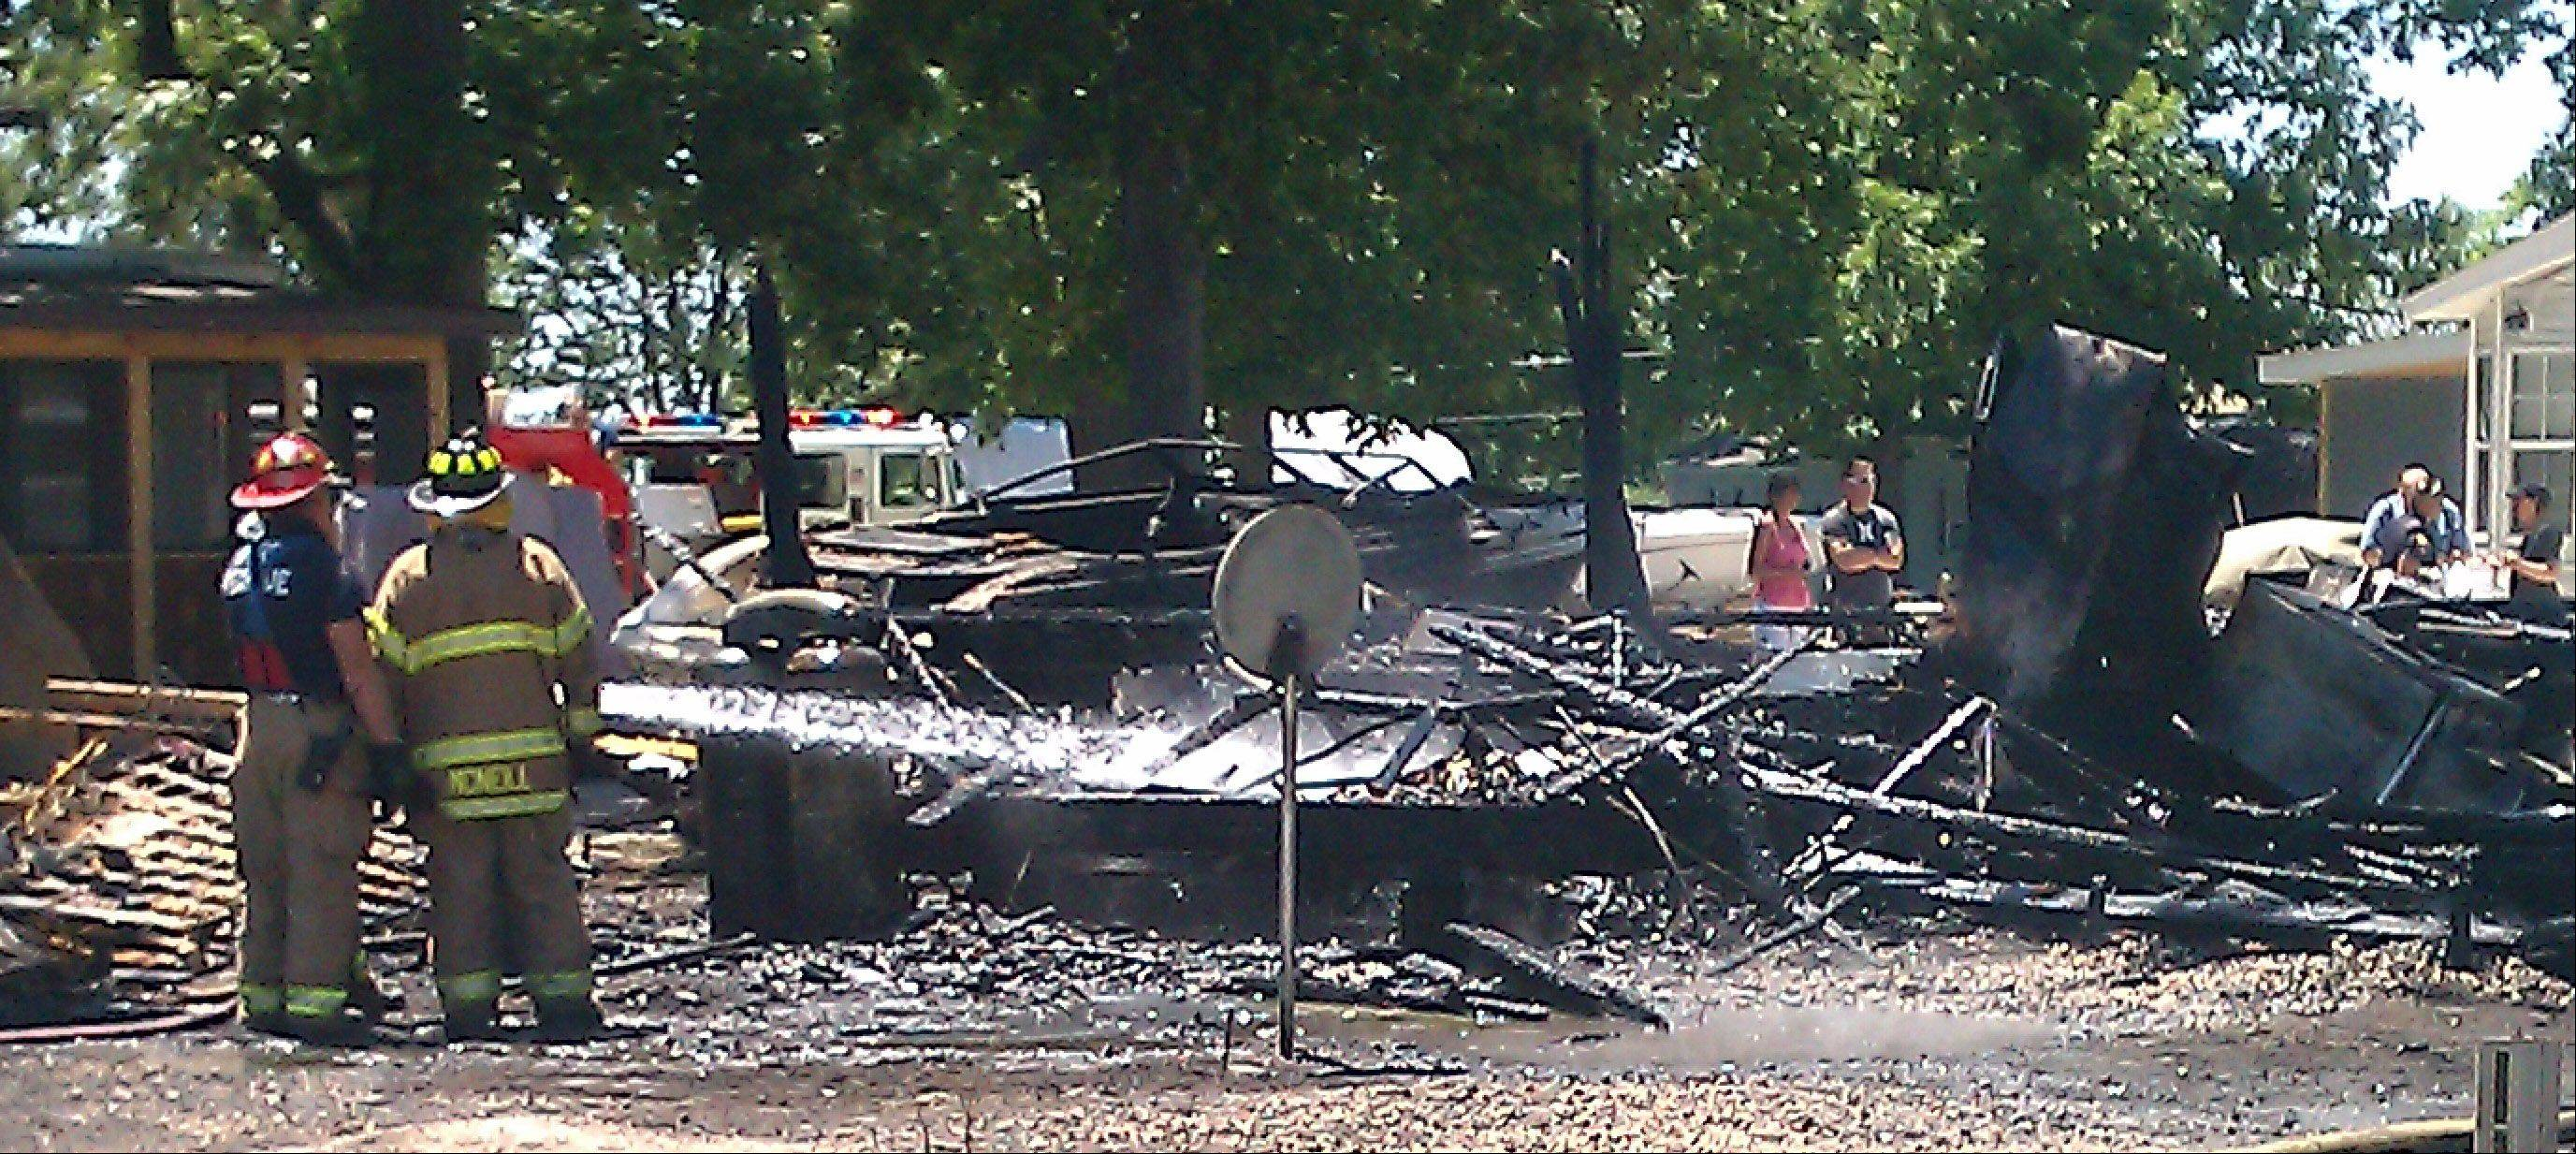 A fire destroyed multiple mobile homes Tuesday in a trailer park near Antioch used primarily by boaters who access the nearby Chain O' Lakes. No injuries were reported, and investigators do not believe the cause of the fire is suspicions